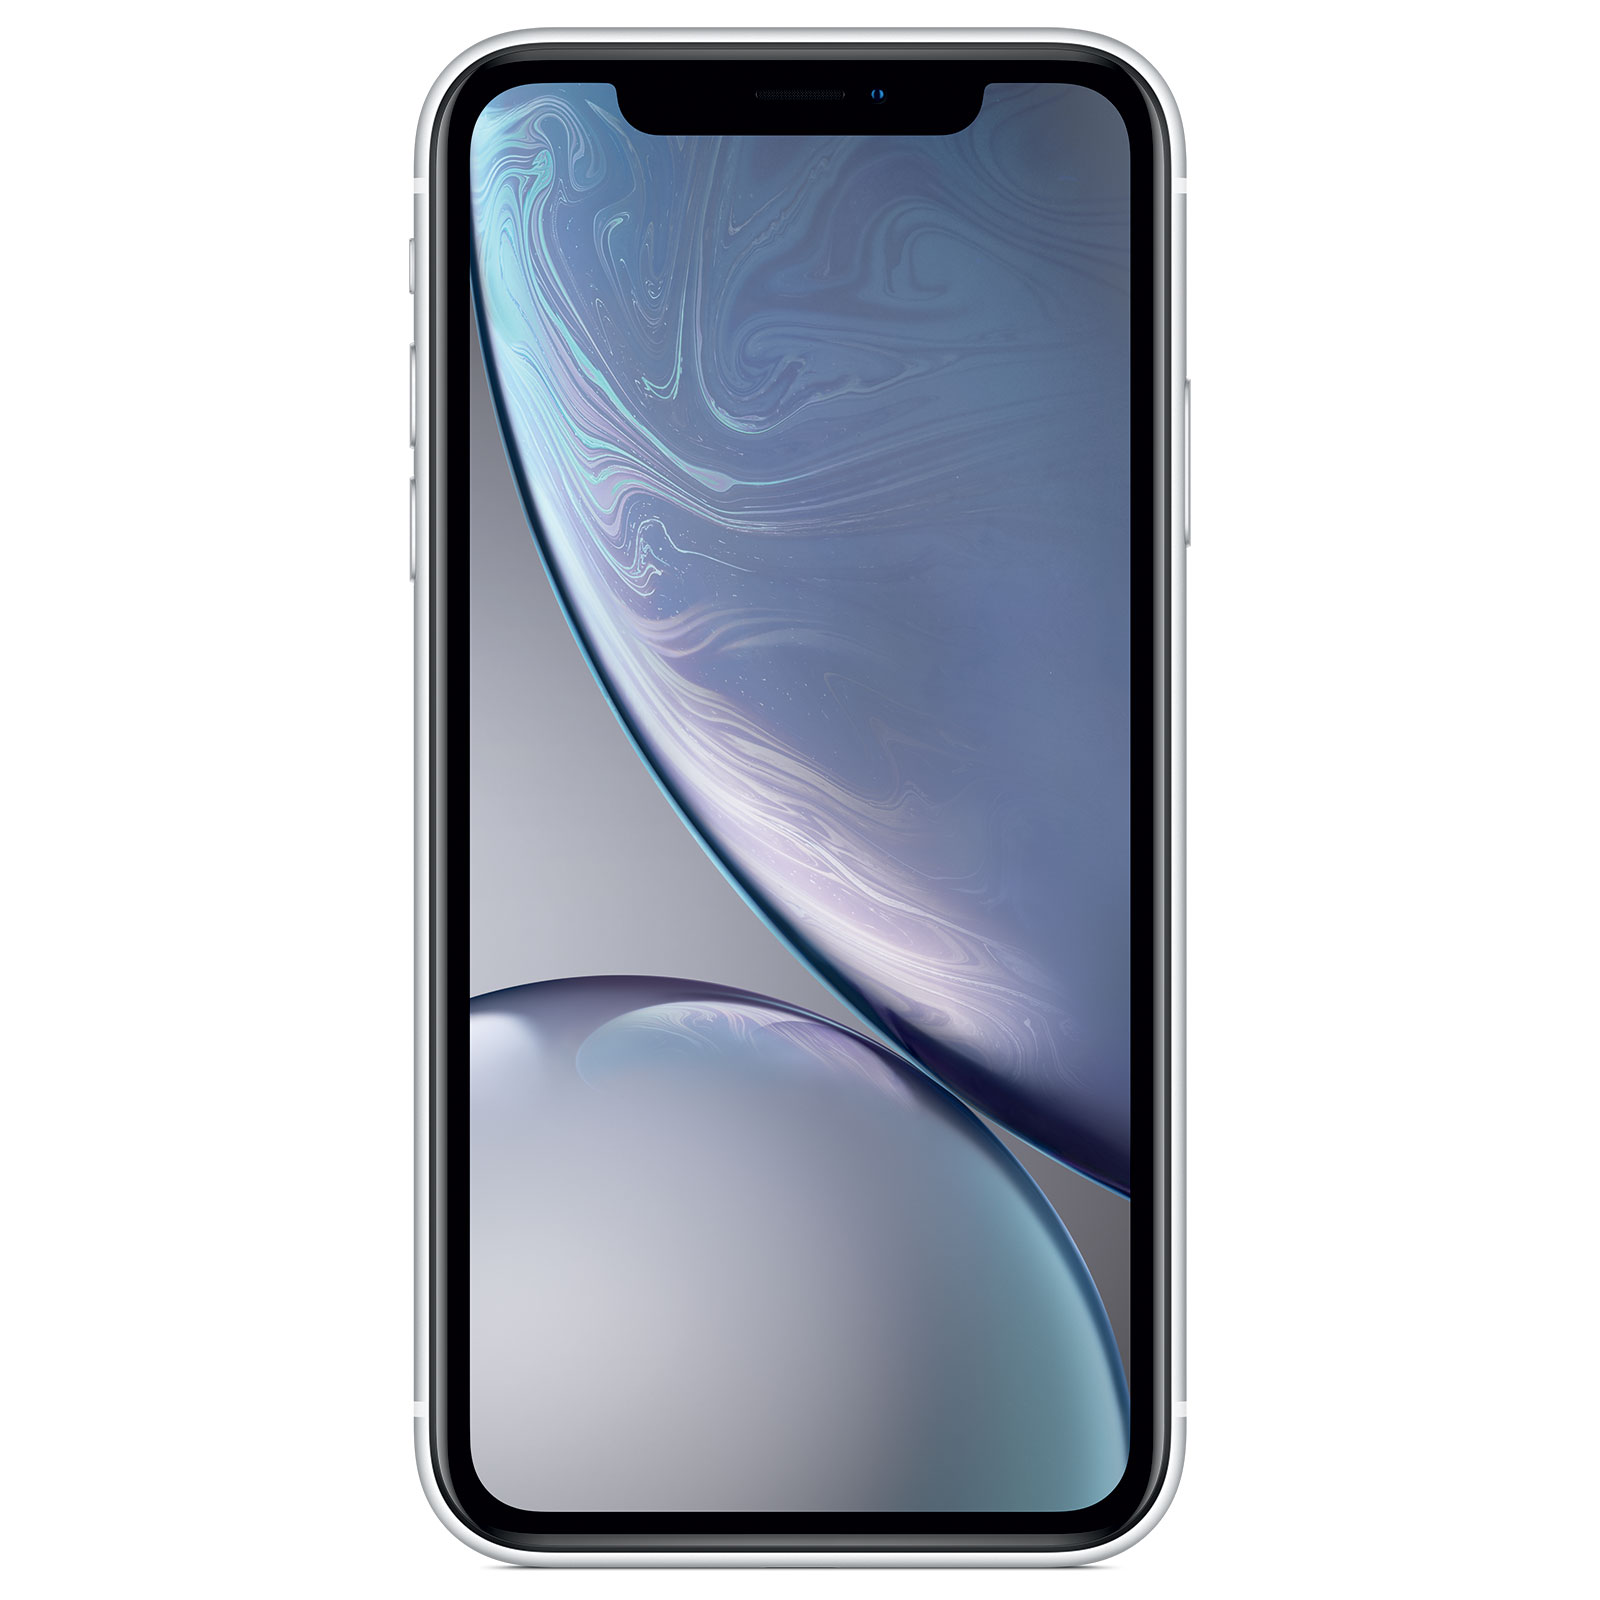 "Mobile & smartphone Apple iPhone XR 128 Go Blanc Smartphone 4G-LTE Advanced IP67 Dual SIM - Apple A12 Bionic Hexa-Core - RAM 3 Go - Ecran 6.1"" 828 x 1792 - 128 Go - NFC/Bluetooth 5.0 - iOS 12"